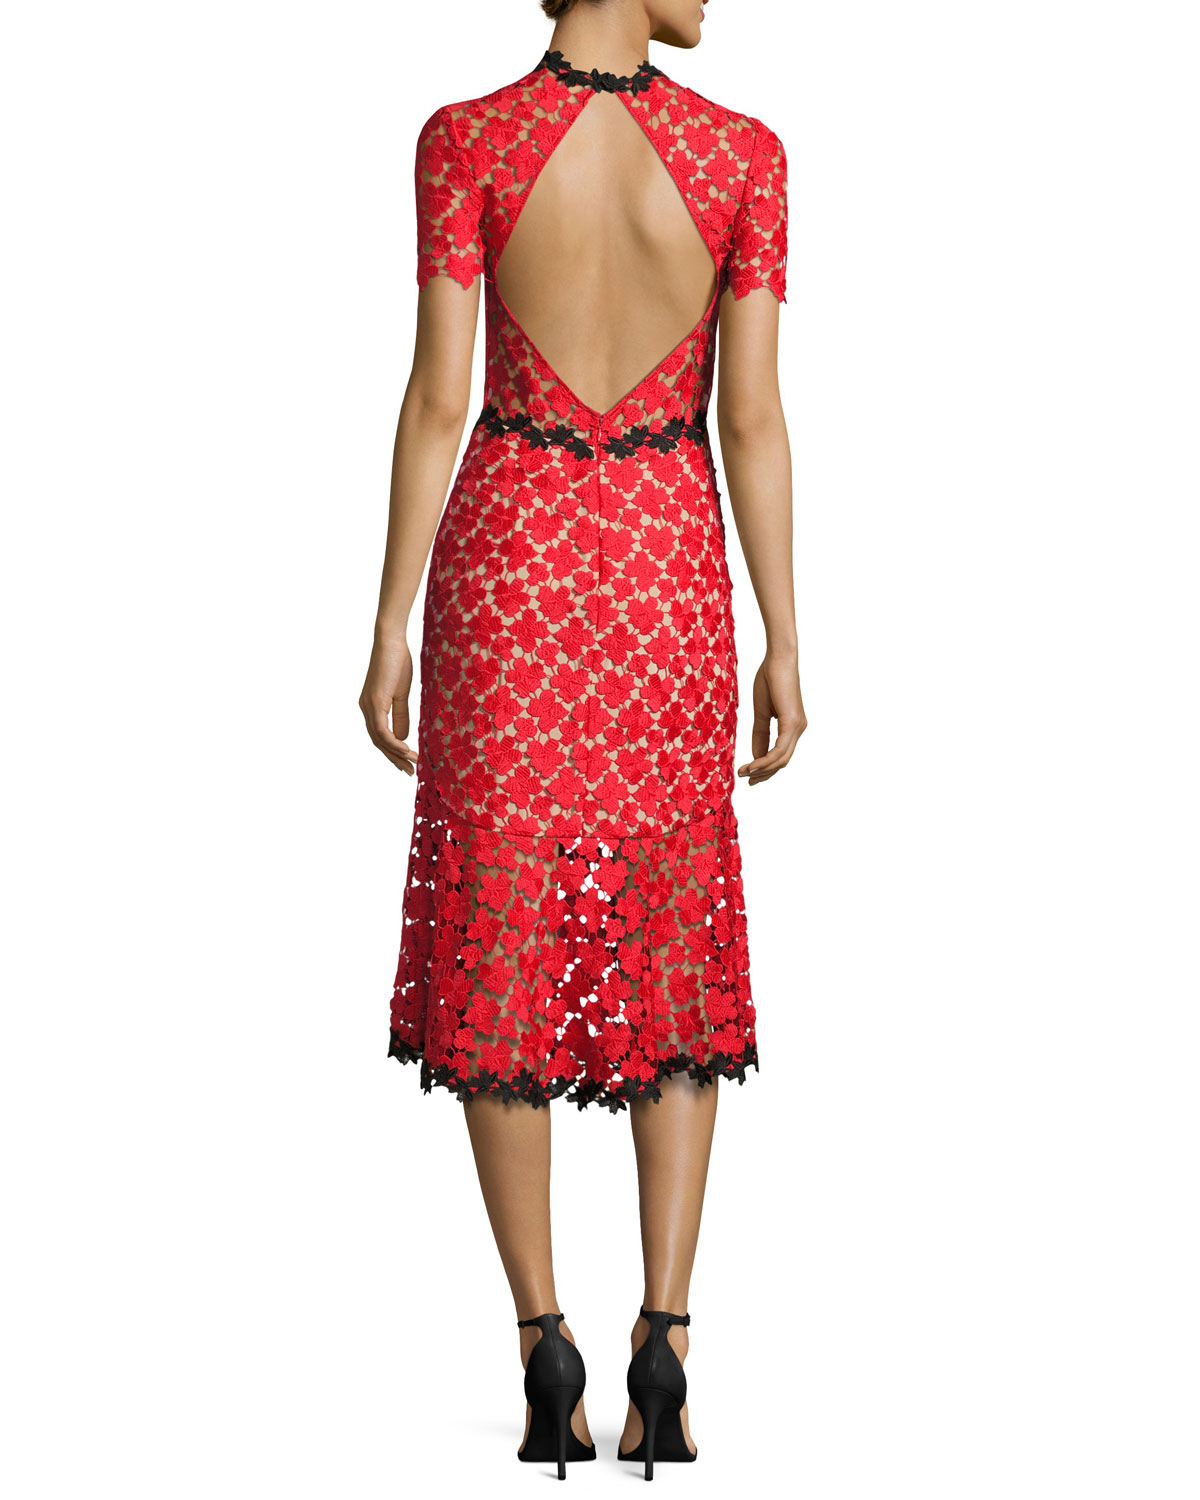 612c80e6acb1 Jill Jill Stuart Floral Lace Open-Back Cocktail Dress